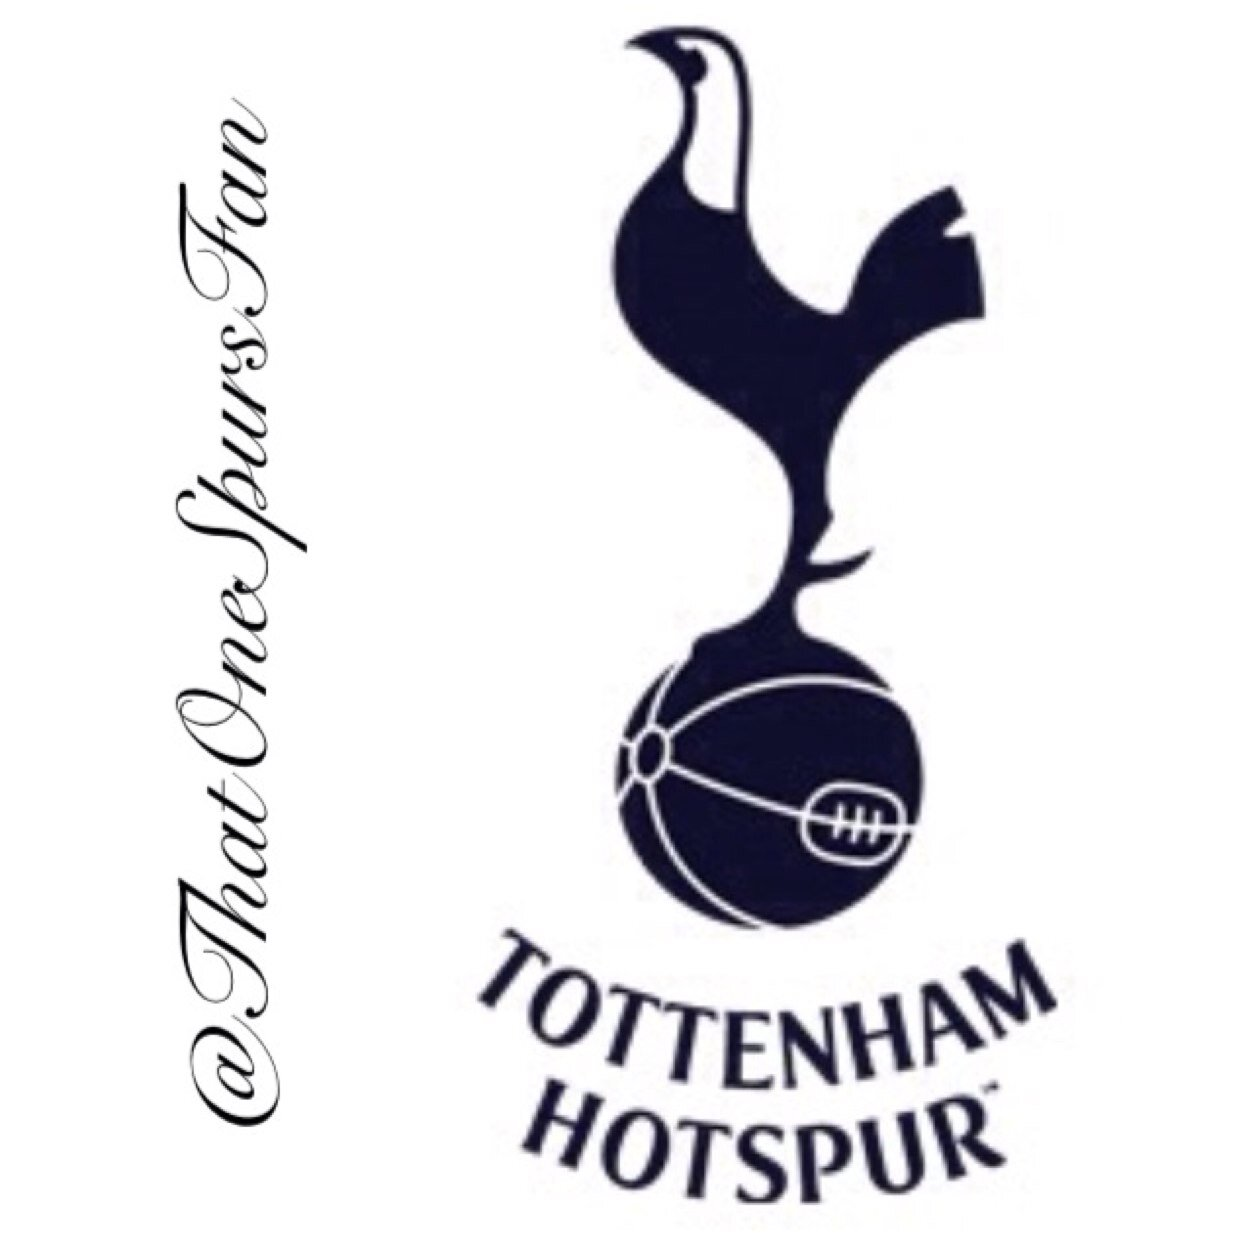 That One Spurs Fan On Twitter Kyle Walker Iphone 4 Hd Wallpaper Http T Co Faiivlwuki